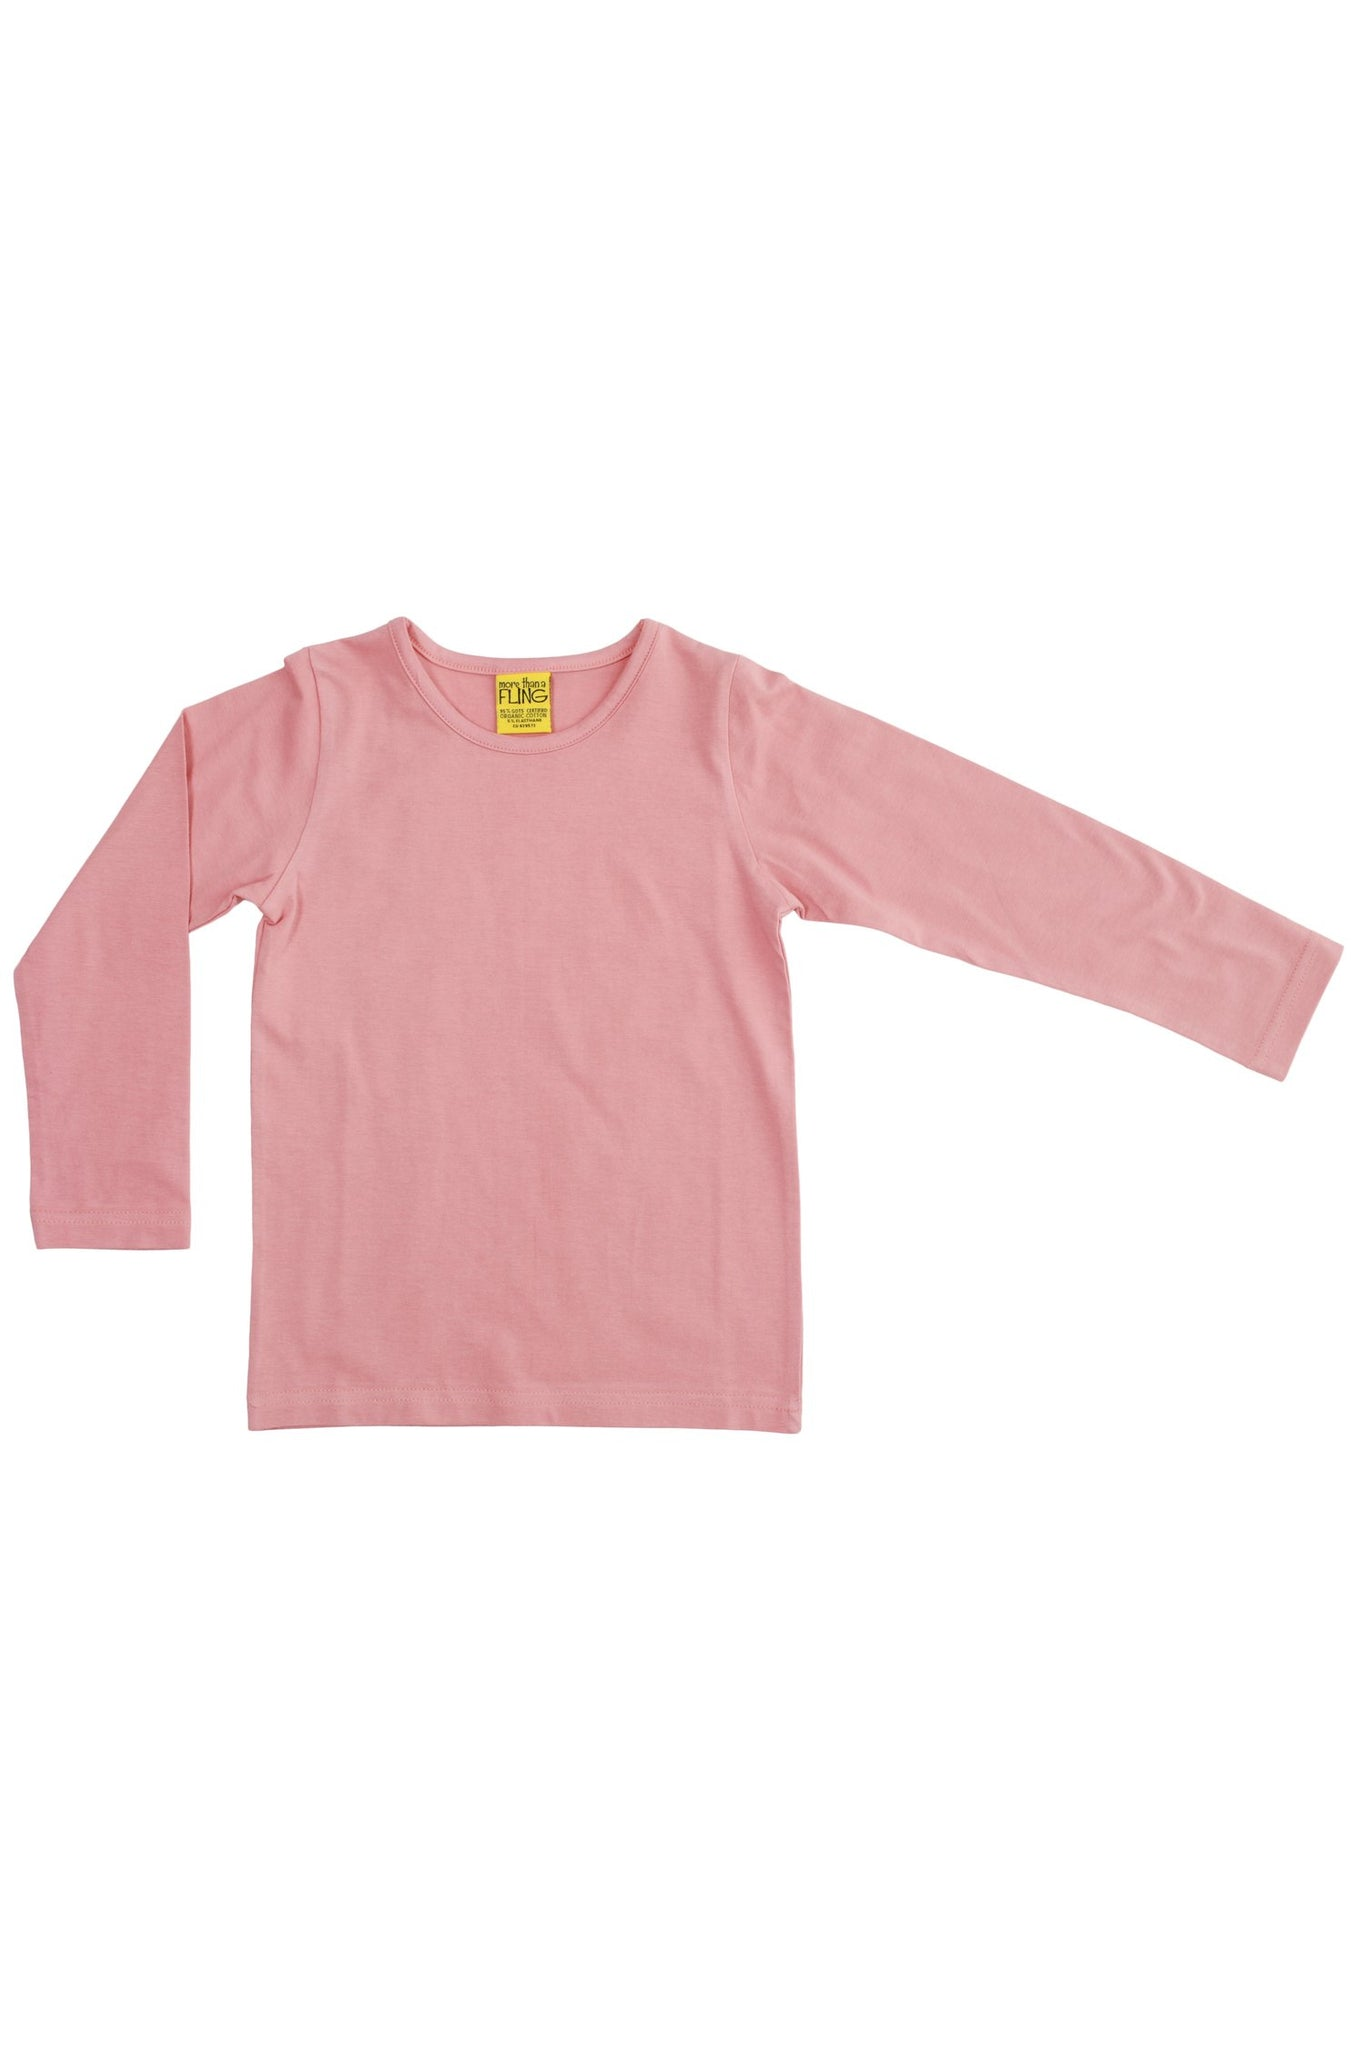 Blush Long Sleeve Top | More Than a Fling | DUNS Fashion - Snugglefox